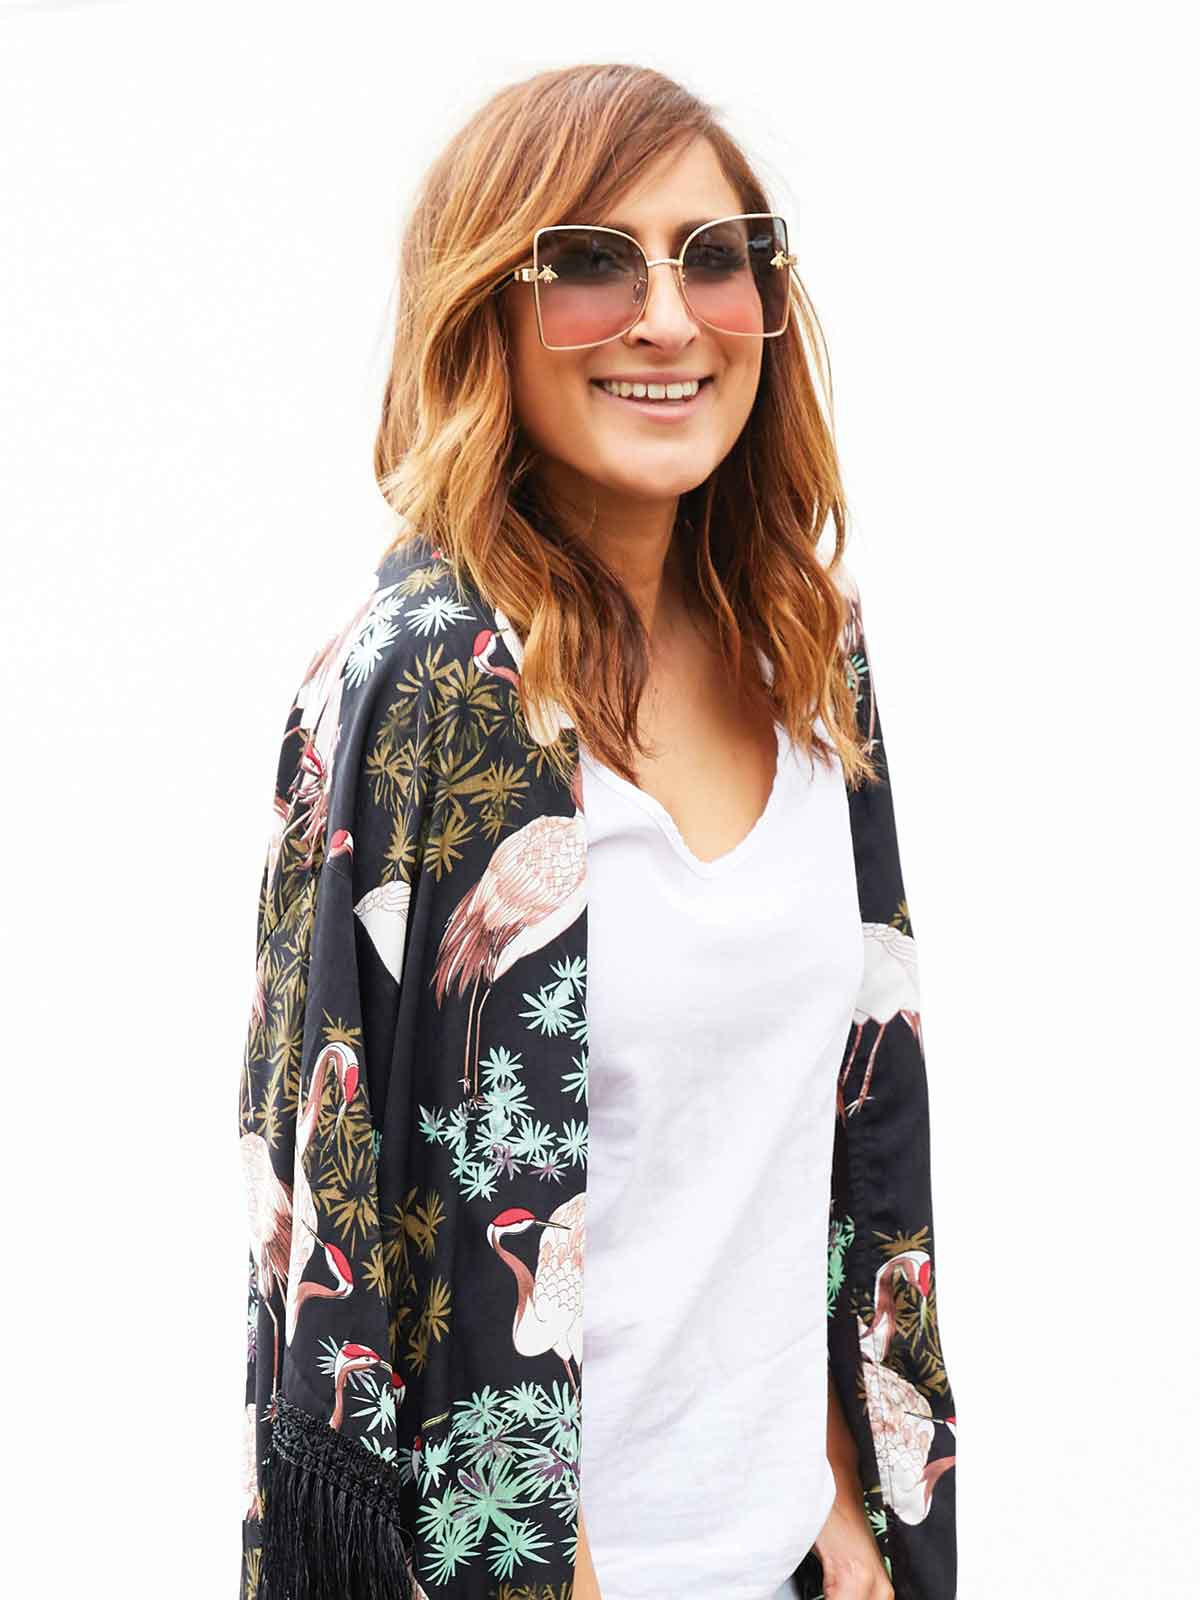 THE BROOKE OMBRE SUNGLASSES